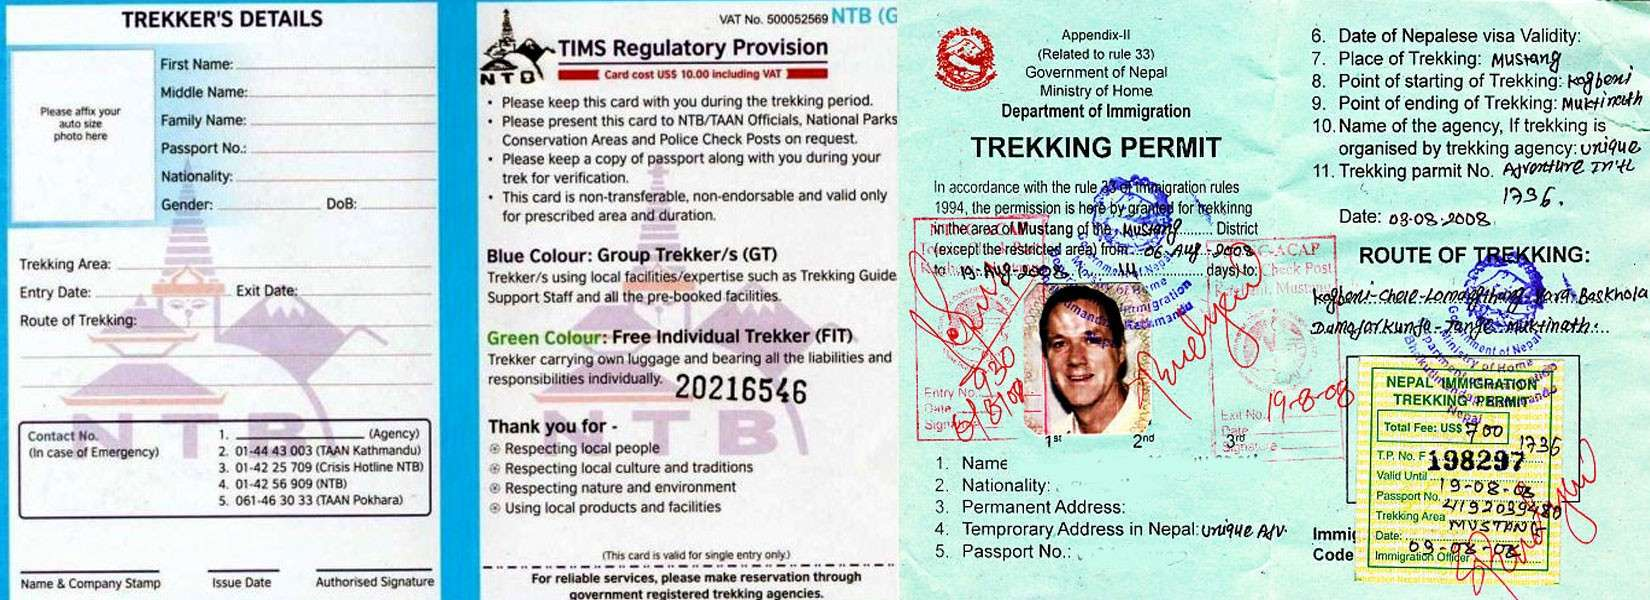 Nepal Trekking Permit and Fees